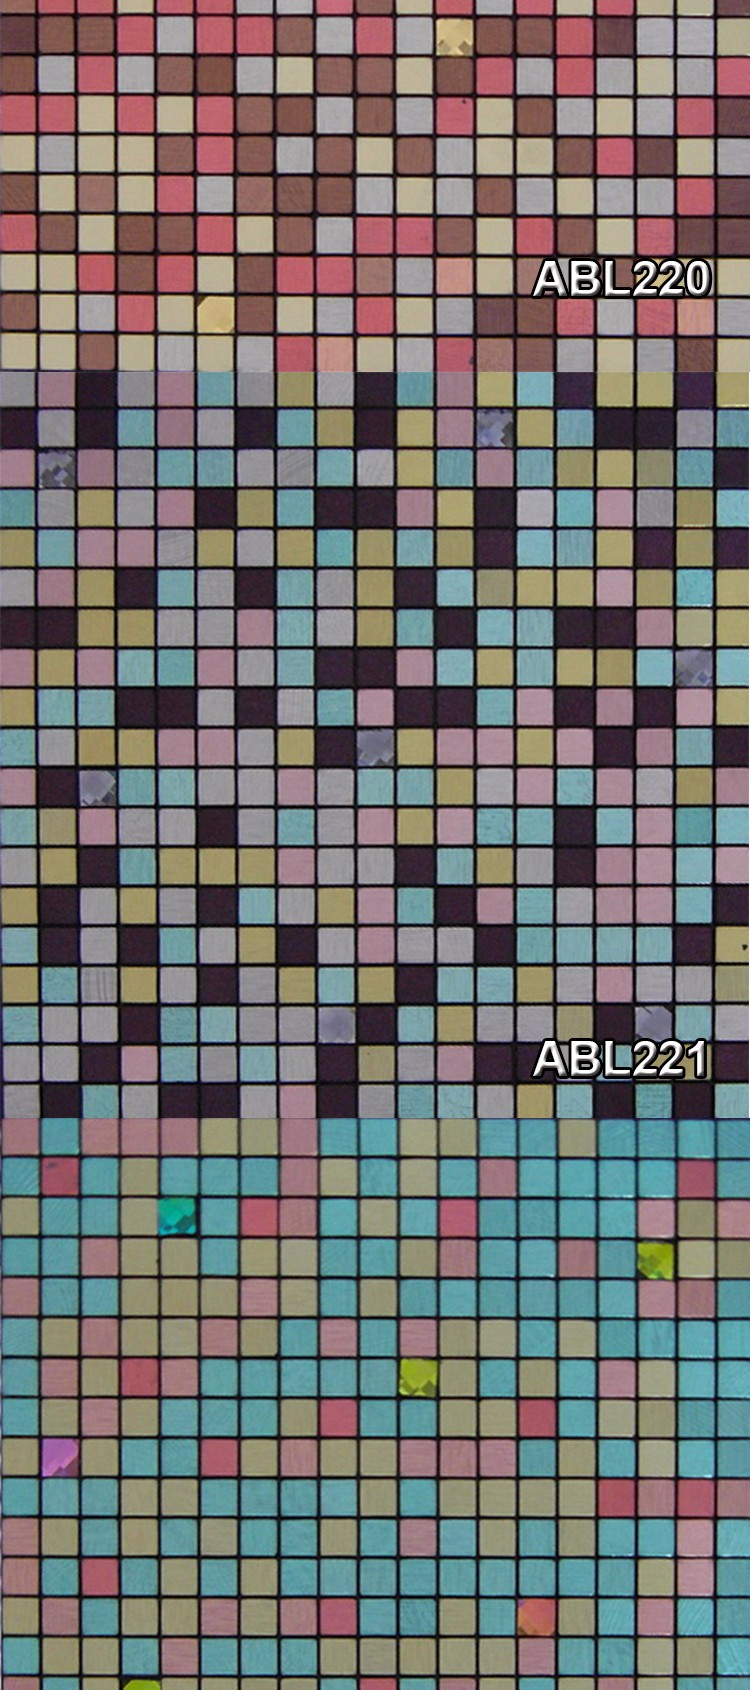 Spots Metal Mosaic Tile Modern Kitchen Home Decoration Bathroom Design Swimming Pool Mosaics Tile China Supplier ABL02